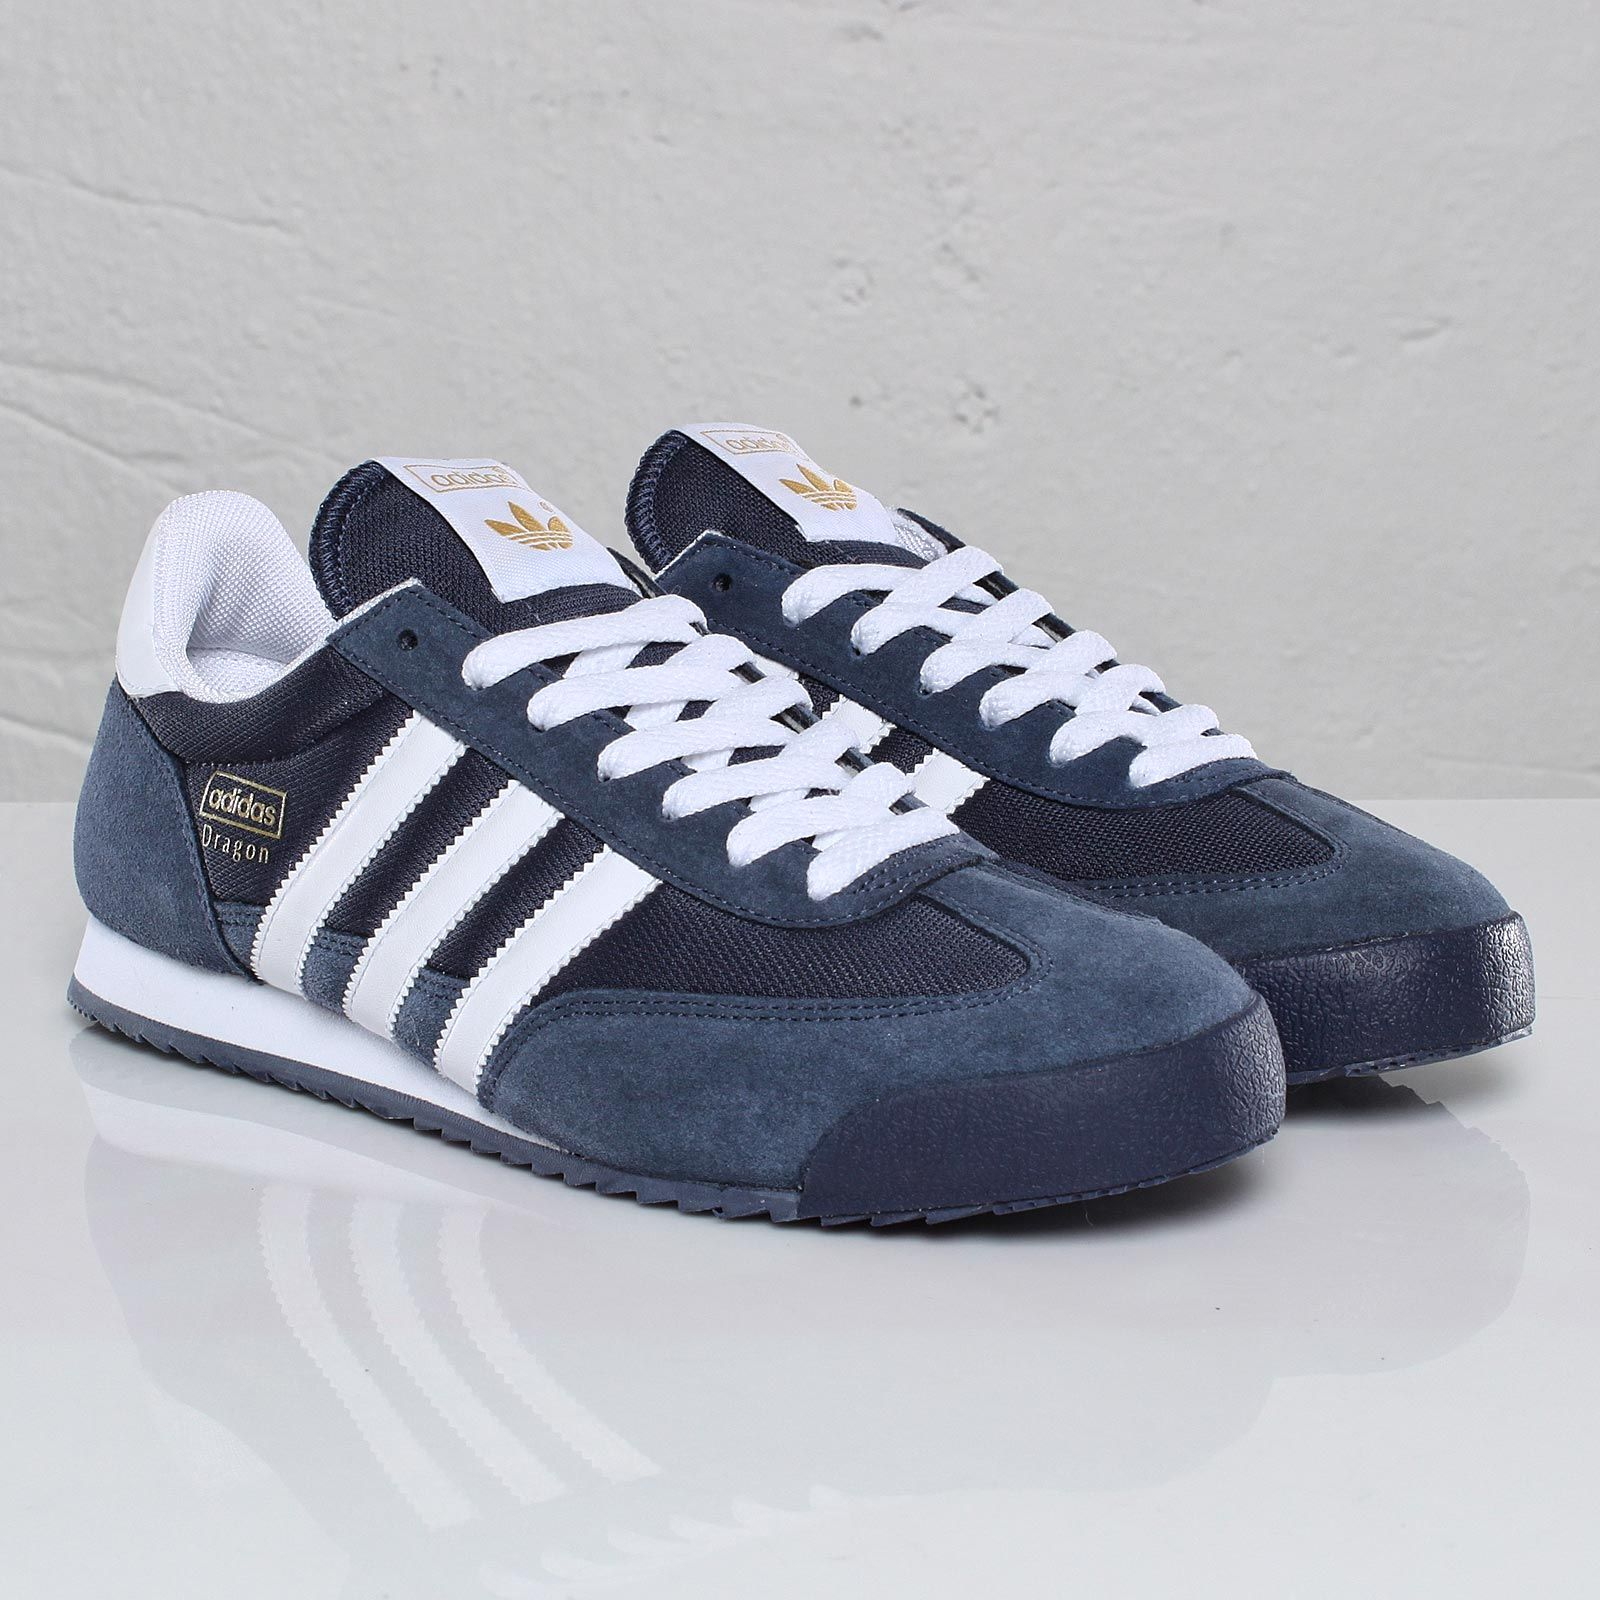 best sneakers 51c26 66f3c adidas Dragon Lincoln, Zapatos Shoes, Shoes Sneakers, Suede Shoes, Adidas  Retro,